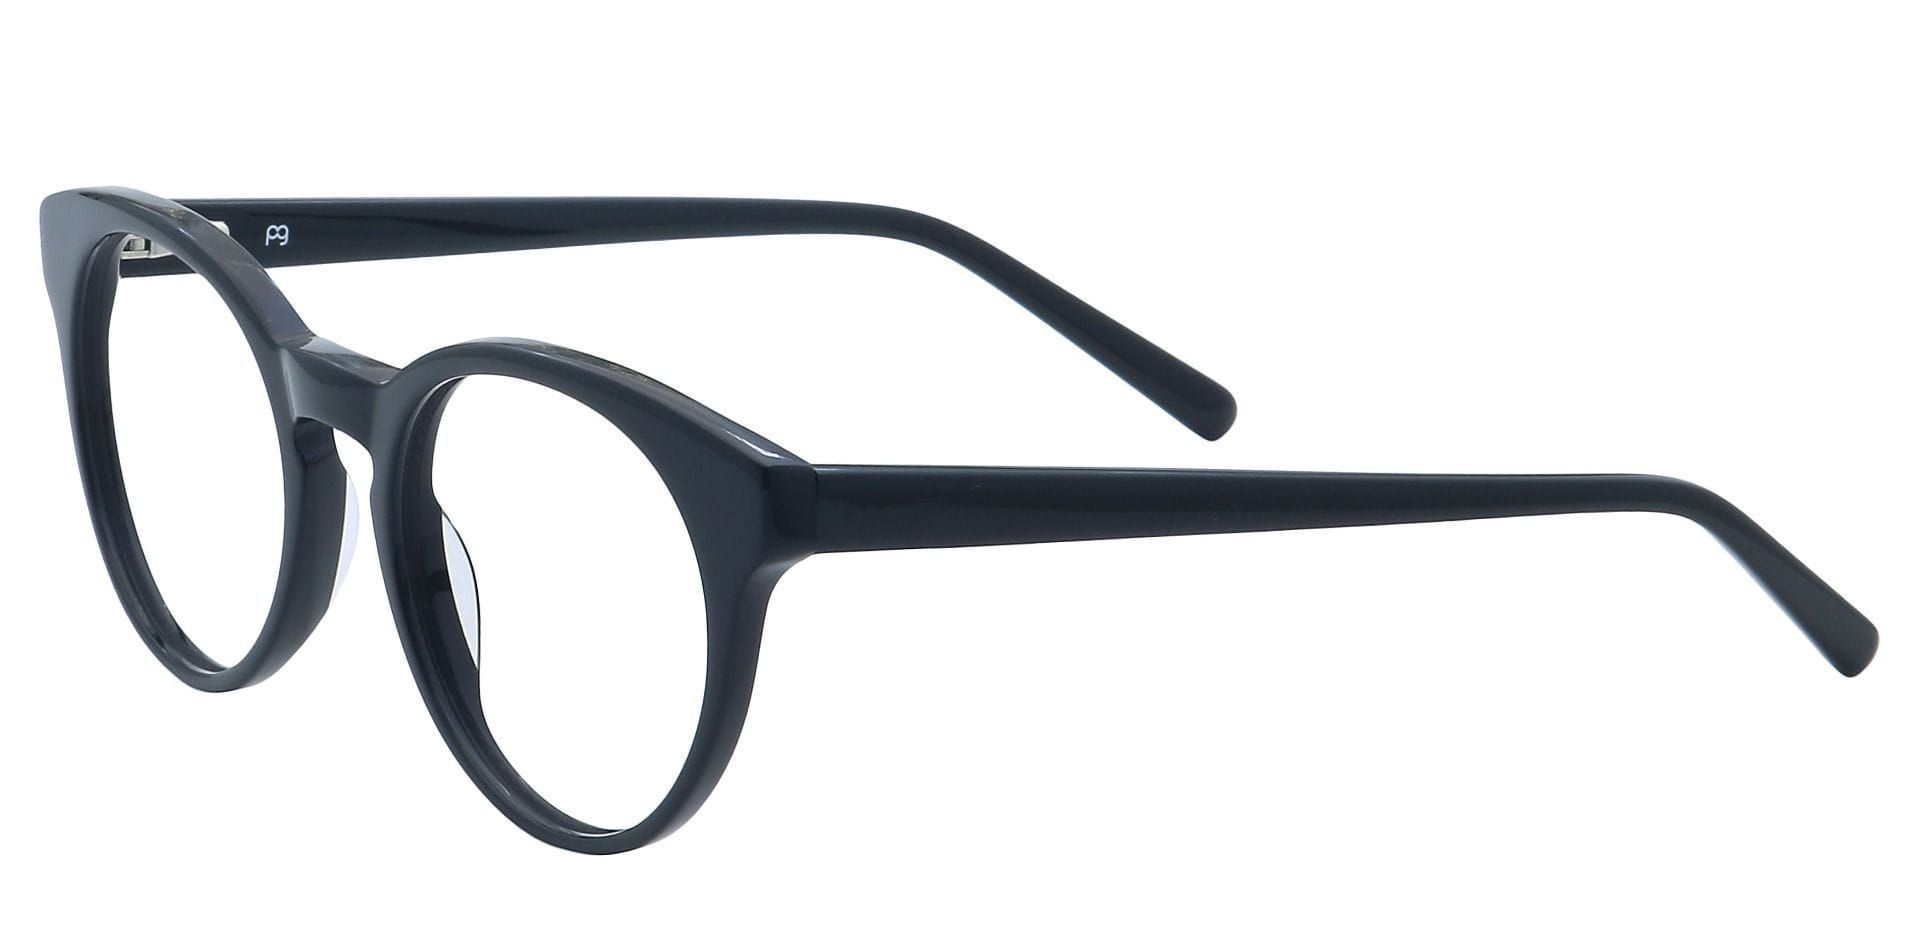 Spright Round Lined Bifocal Glasses - Shiny Black